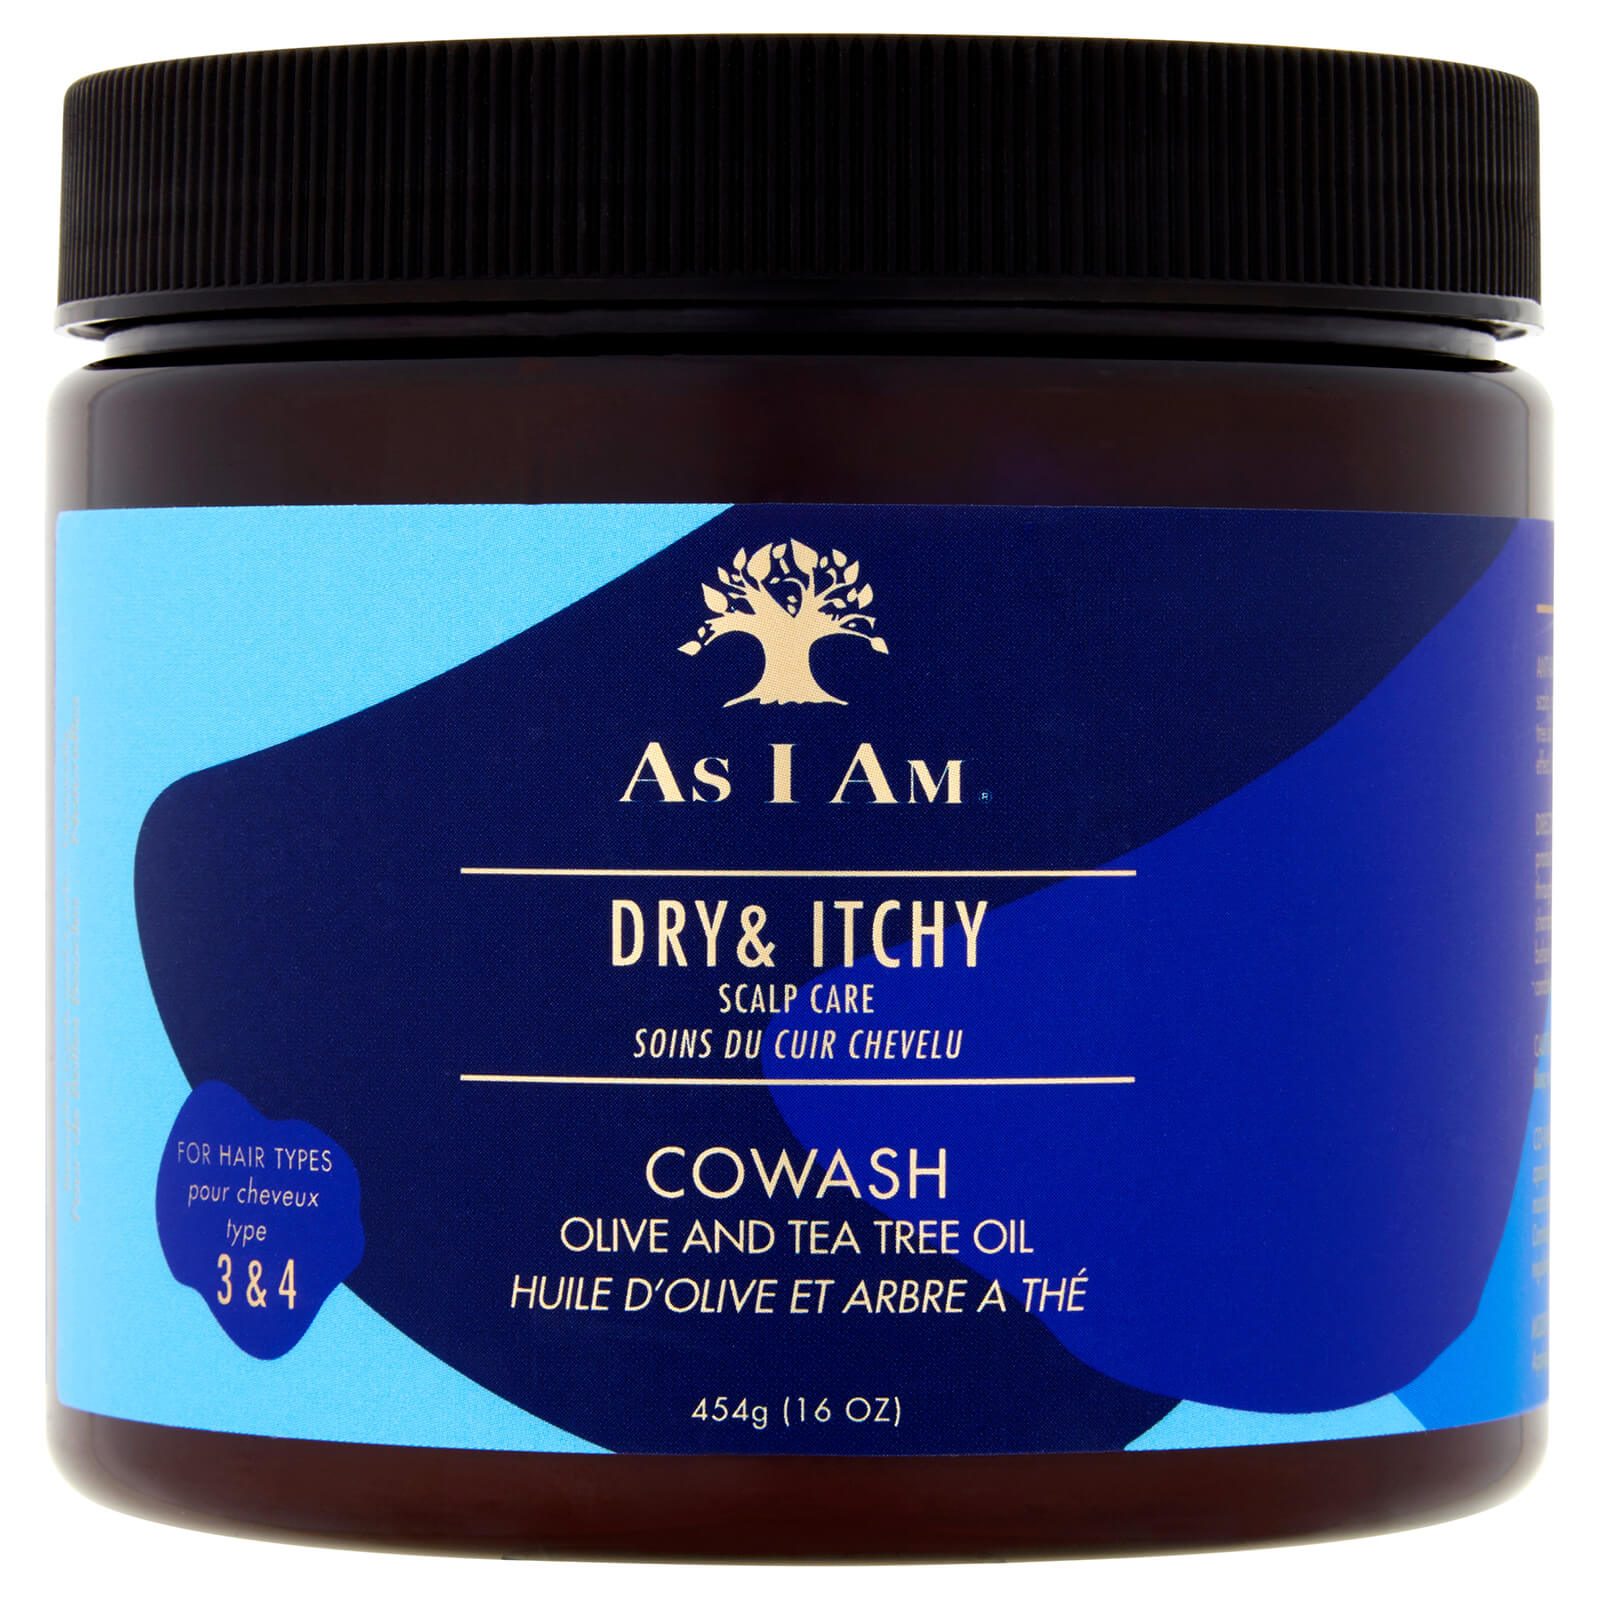 Купить As I Am Dry and Itchy Scalp Care Olive and Tea Tree Oil Co-Wash 454g